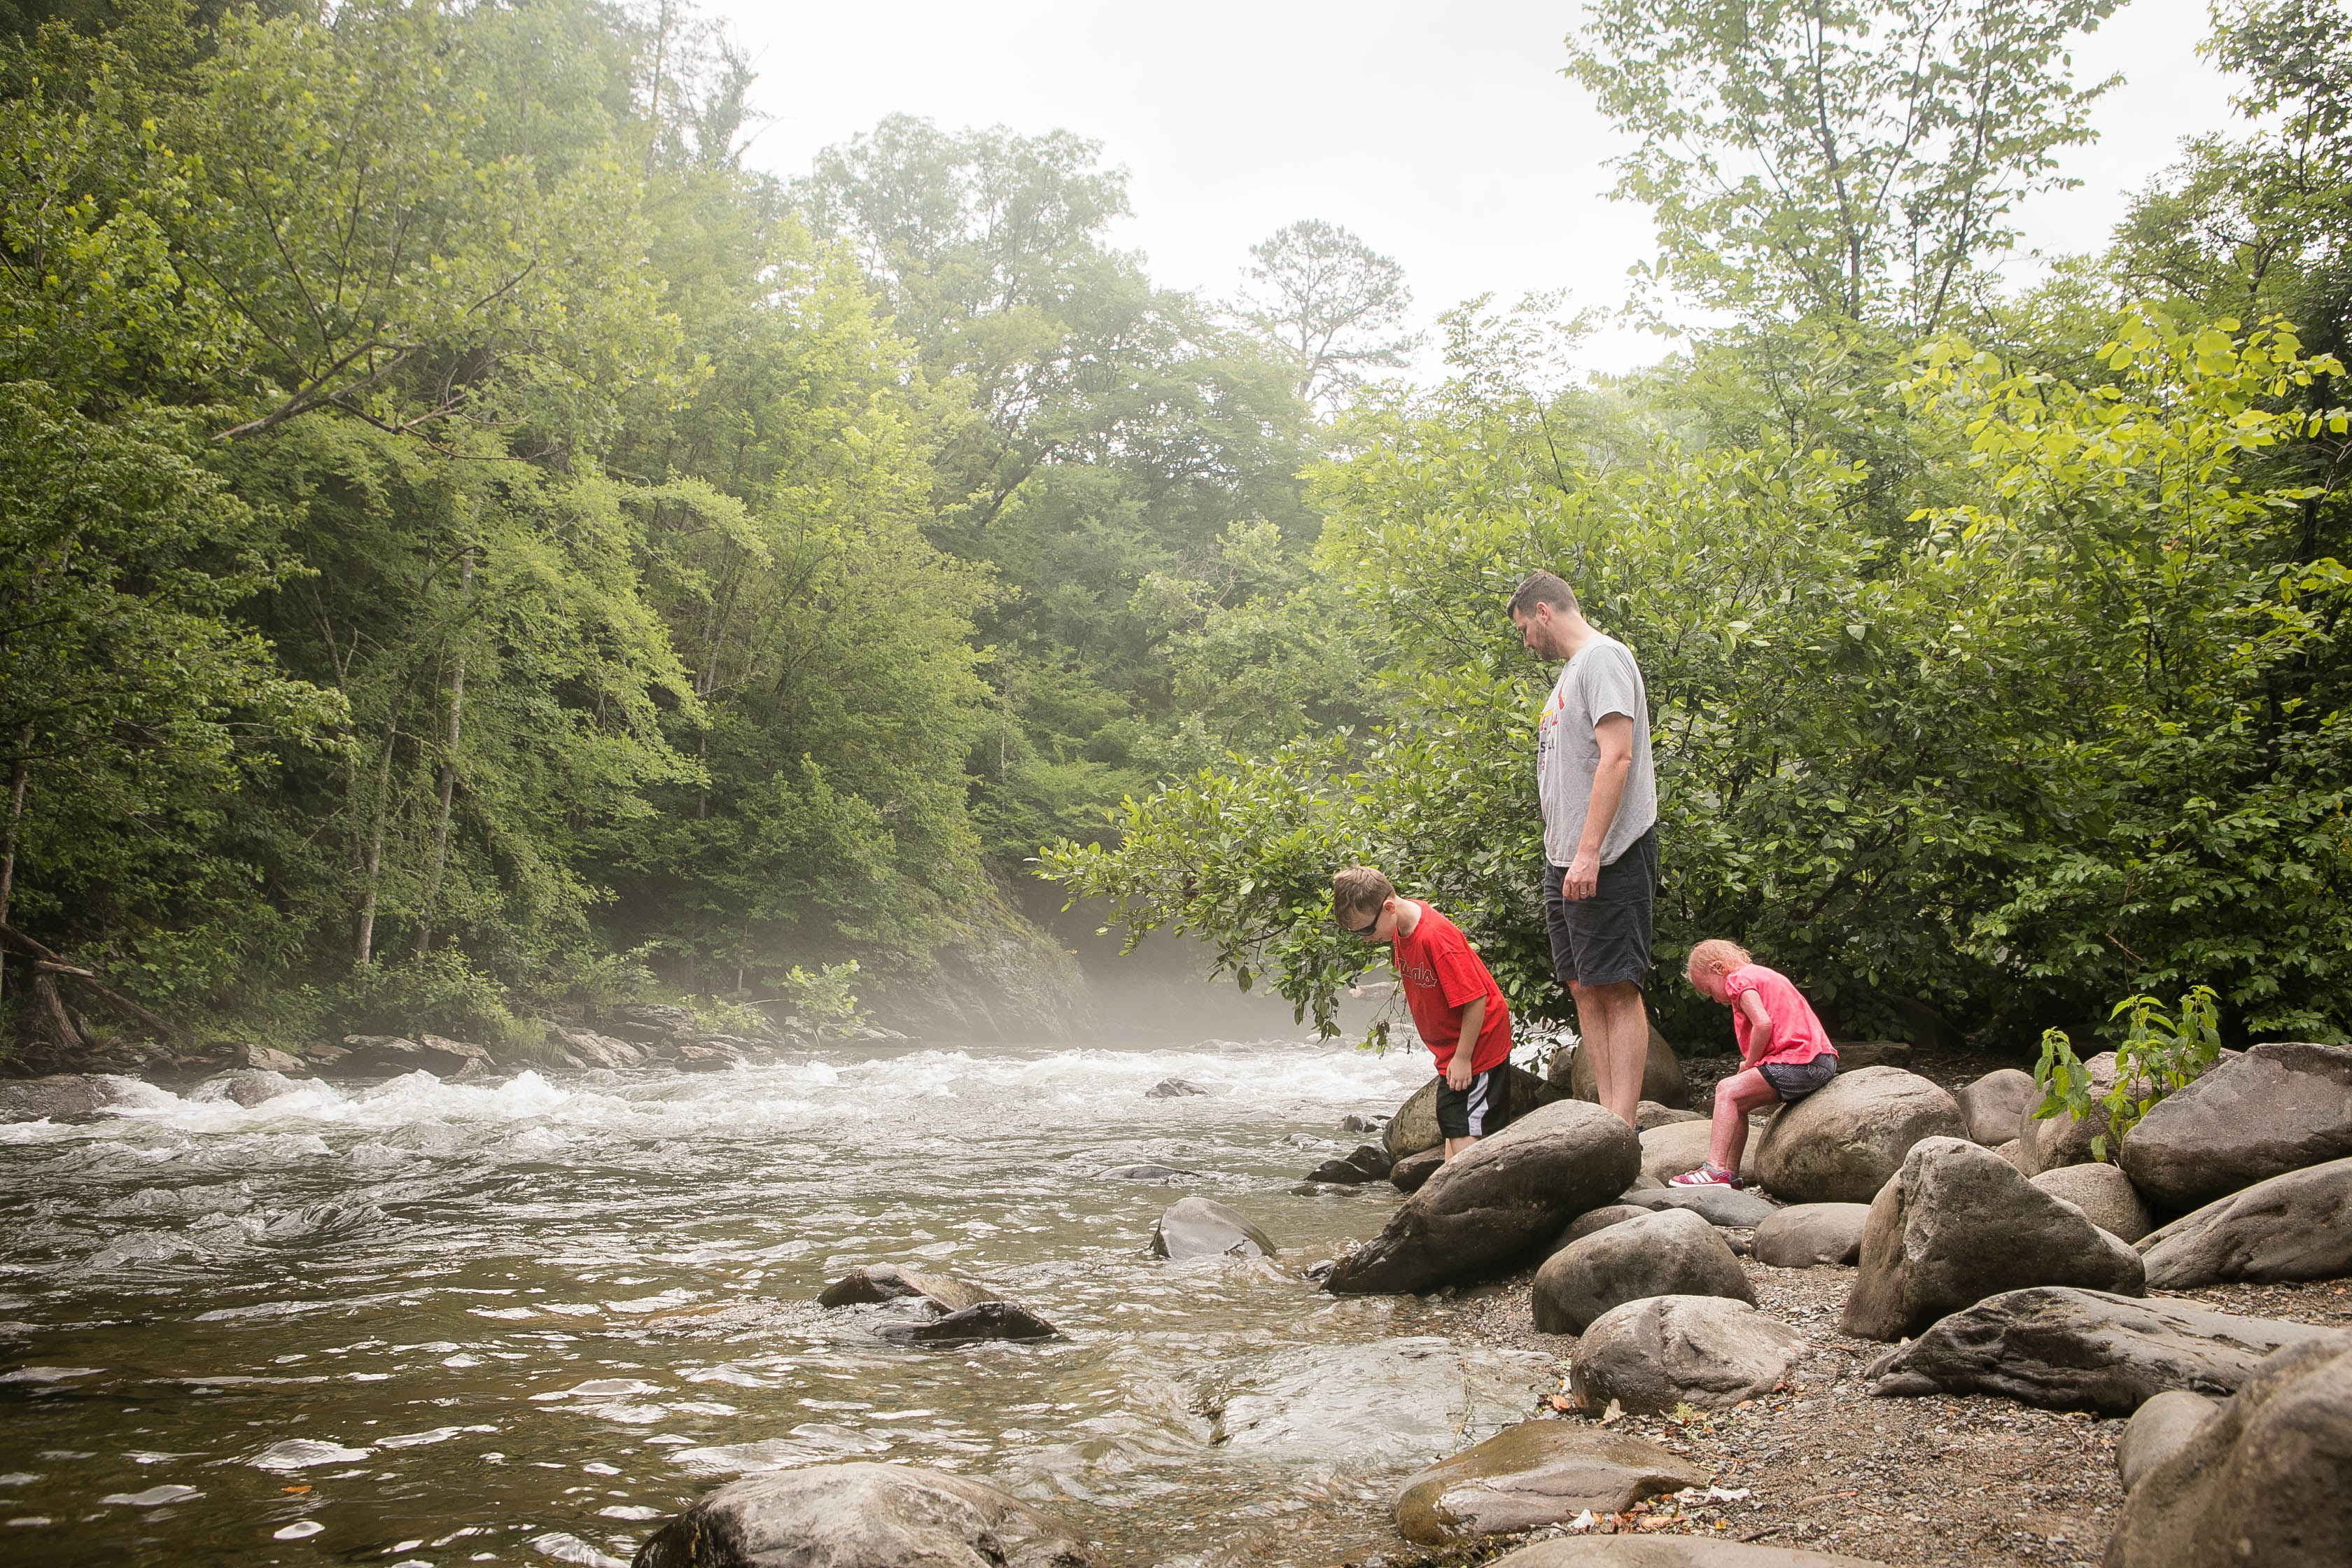 Playing in creeks - a great thing to do with kids while on vacation in the Smoky Mountains